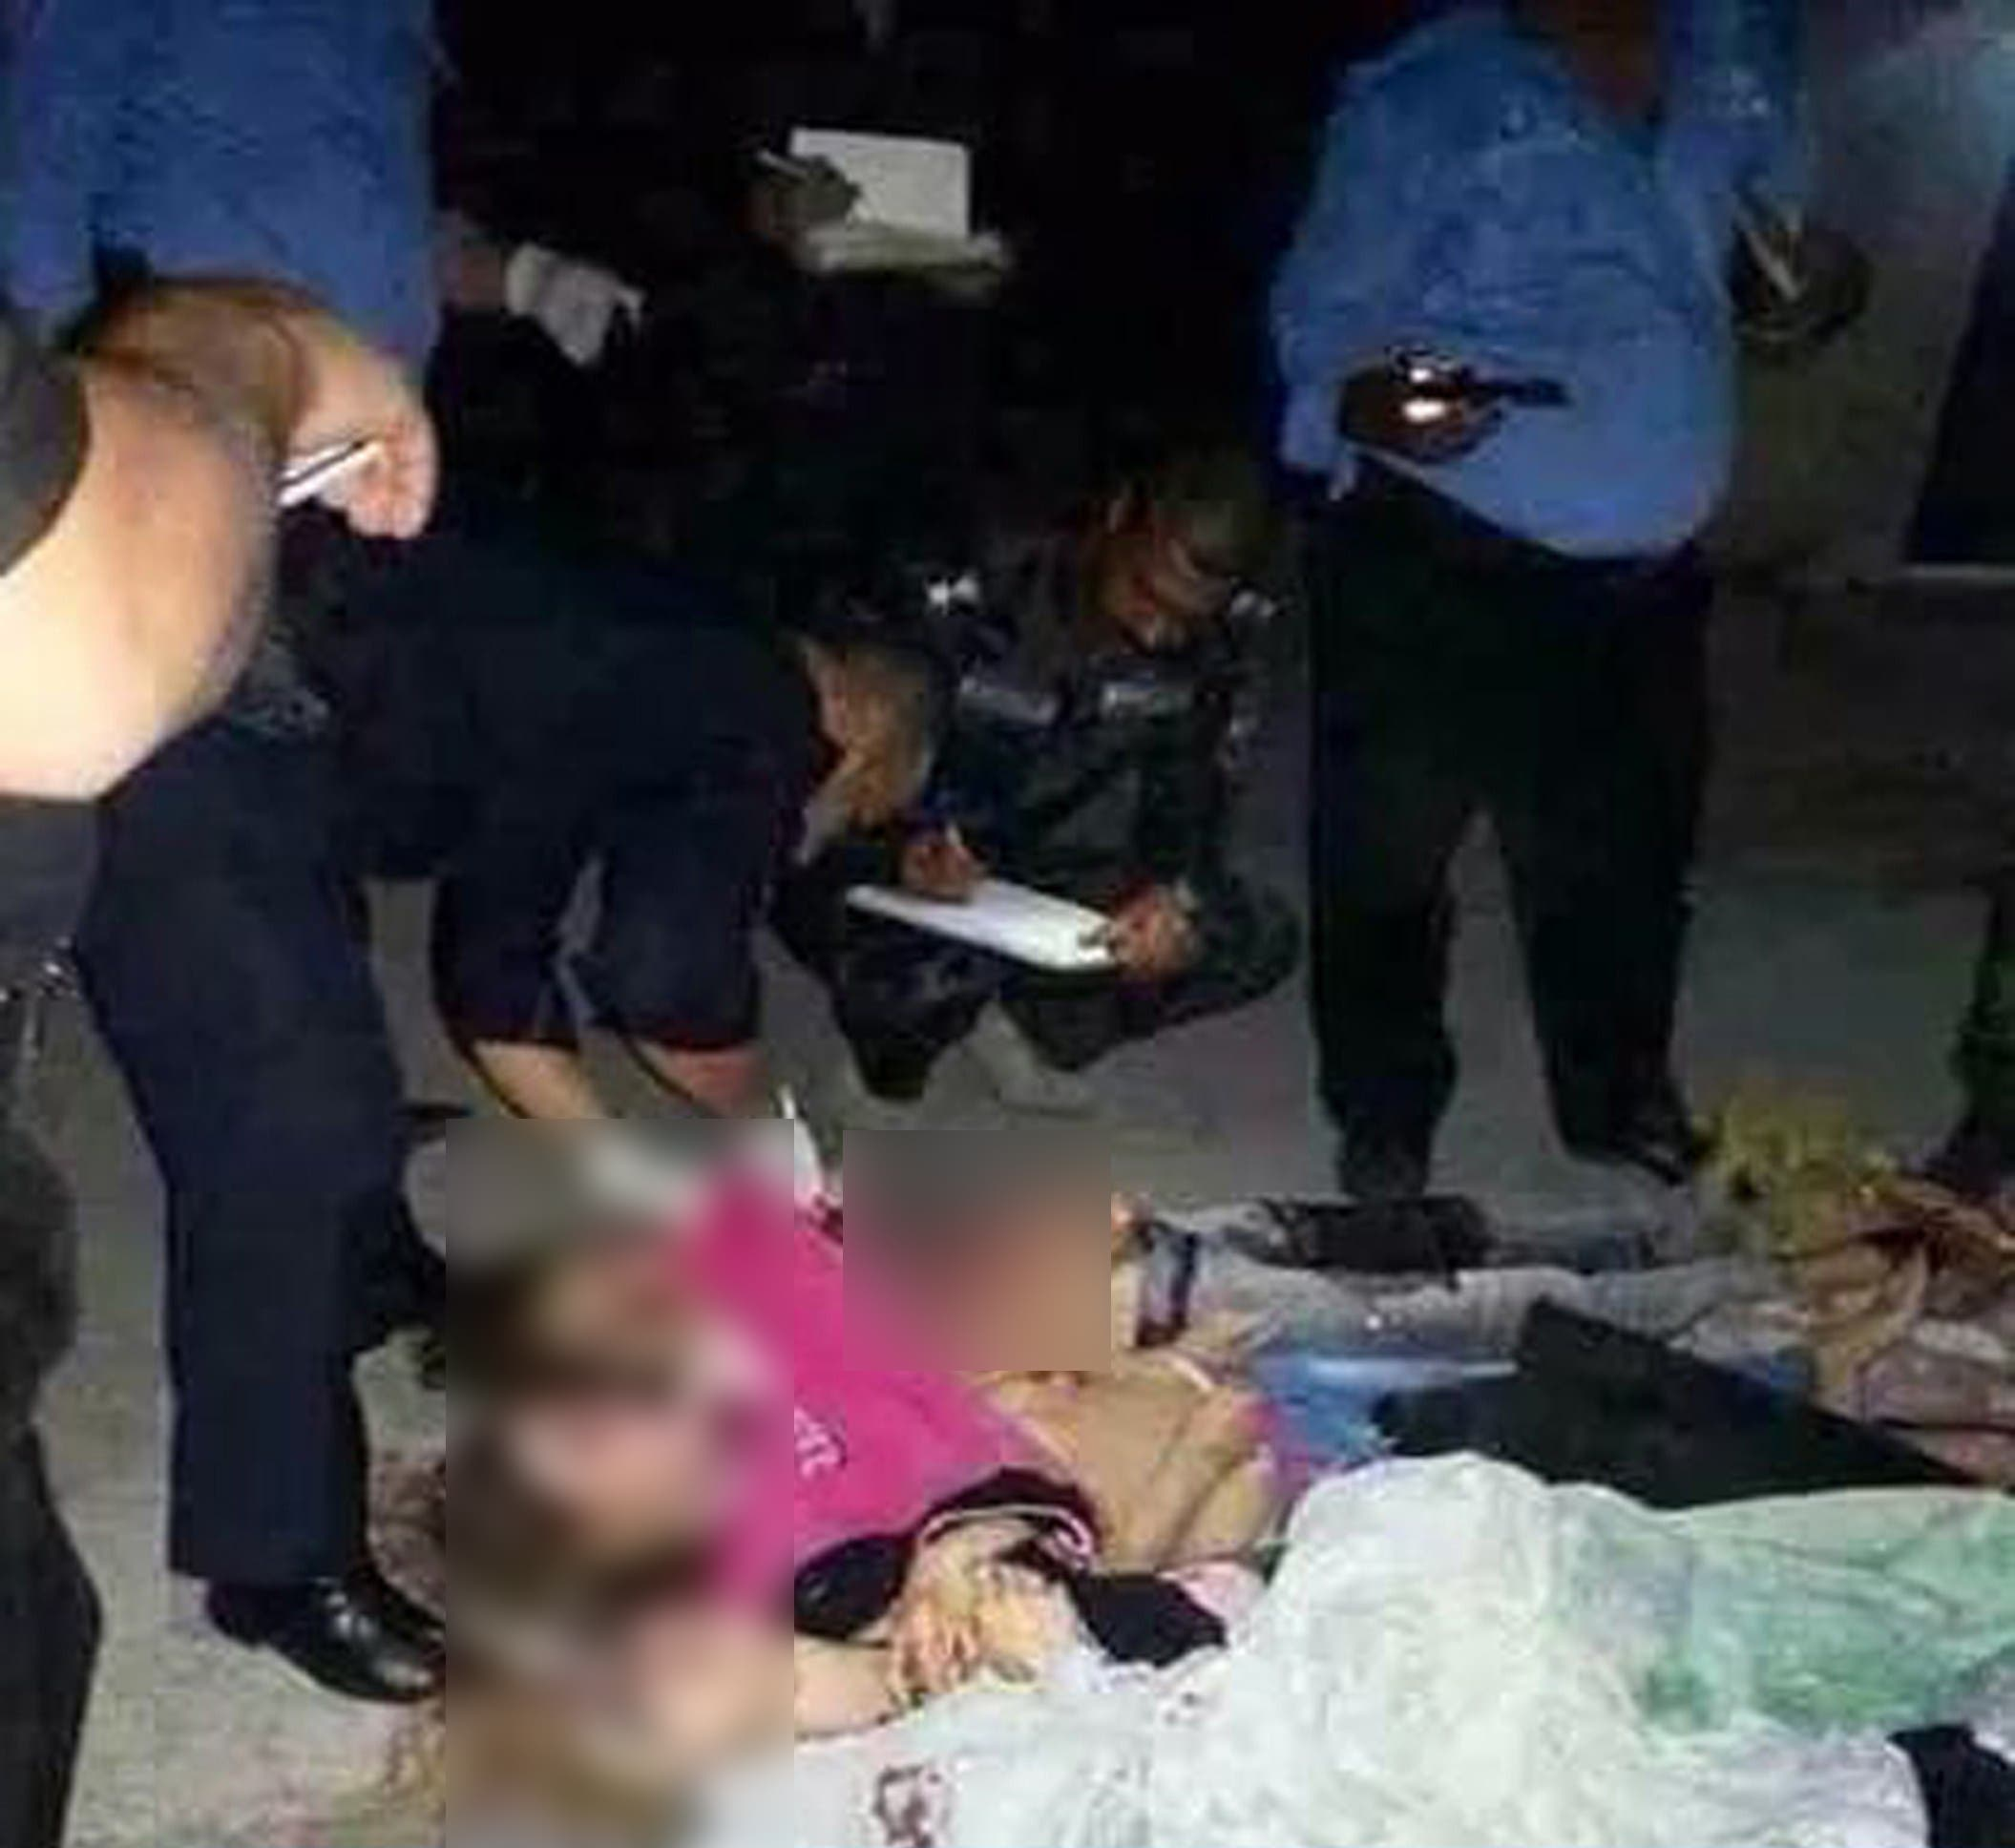 Iraqi security forces checking the bodies of alleged prostitutes after they were slaughtered by gunmen. (AFP)